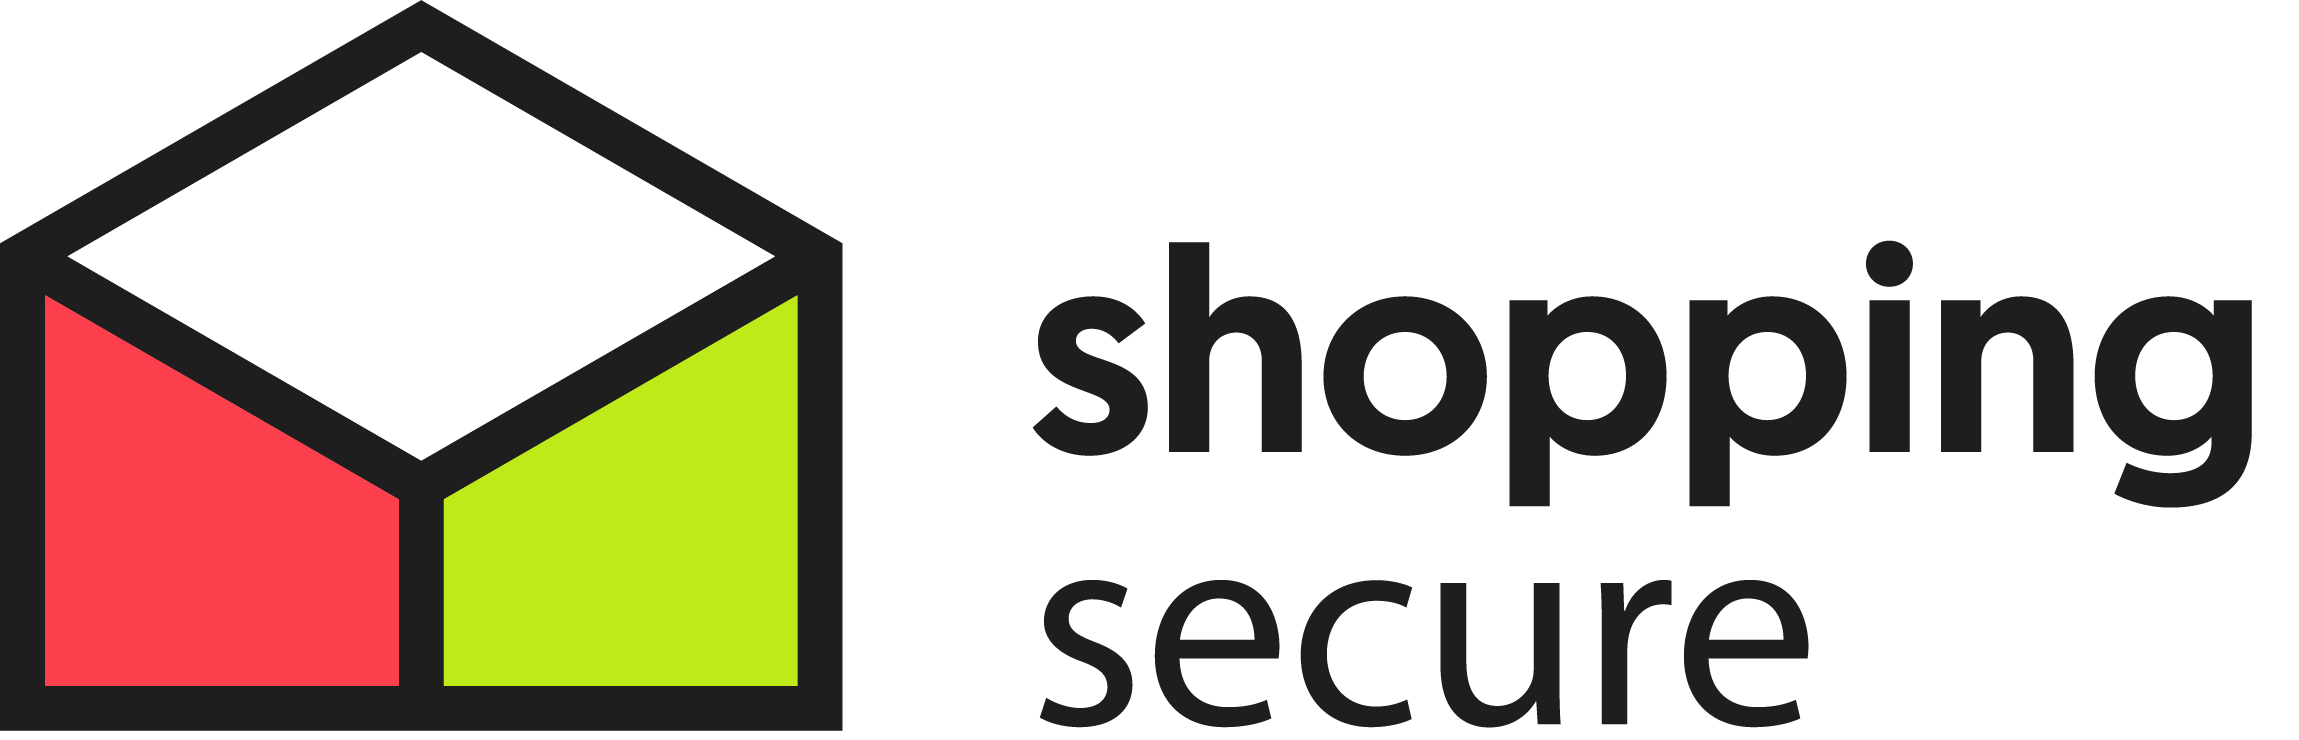 Shopping_Secure_Horizontaal_Kleur